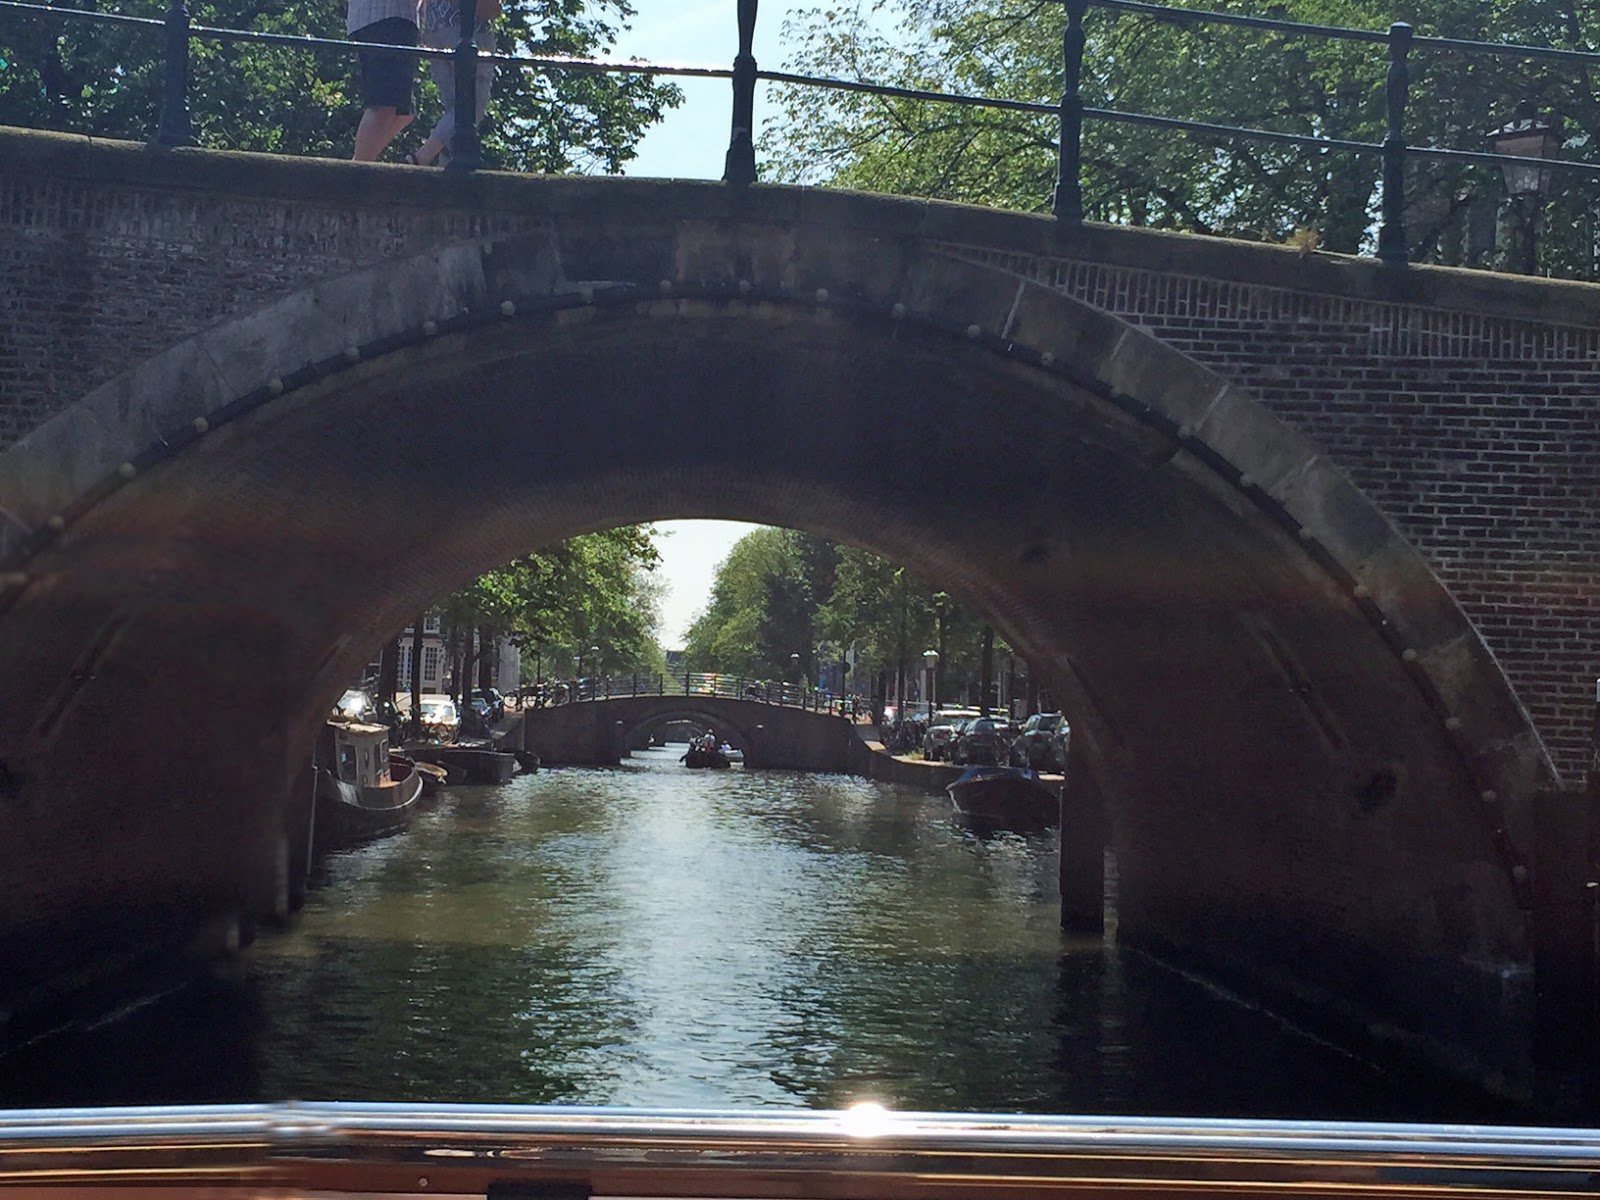 Amsterdam Fashion Week - 7 Canals